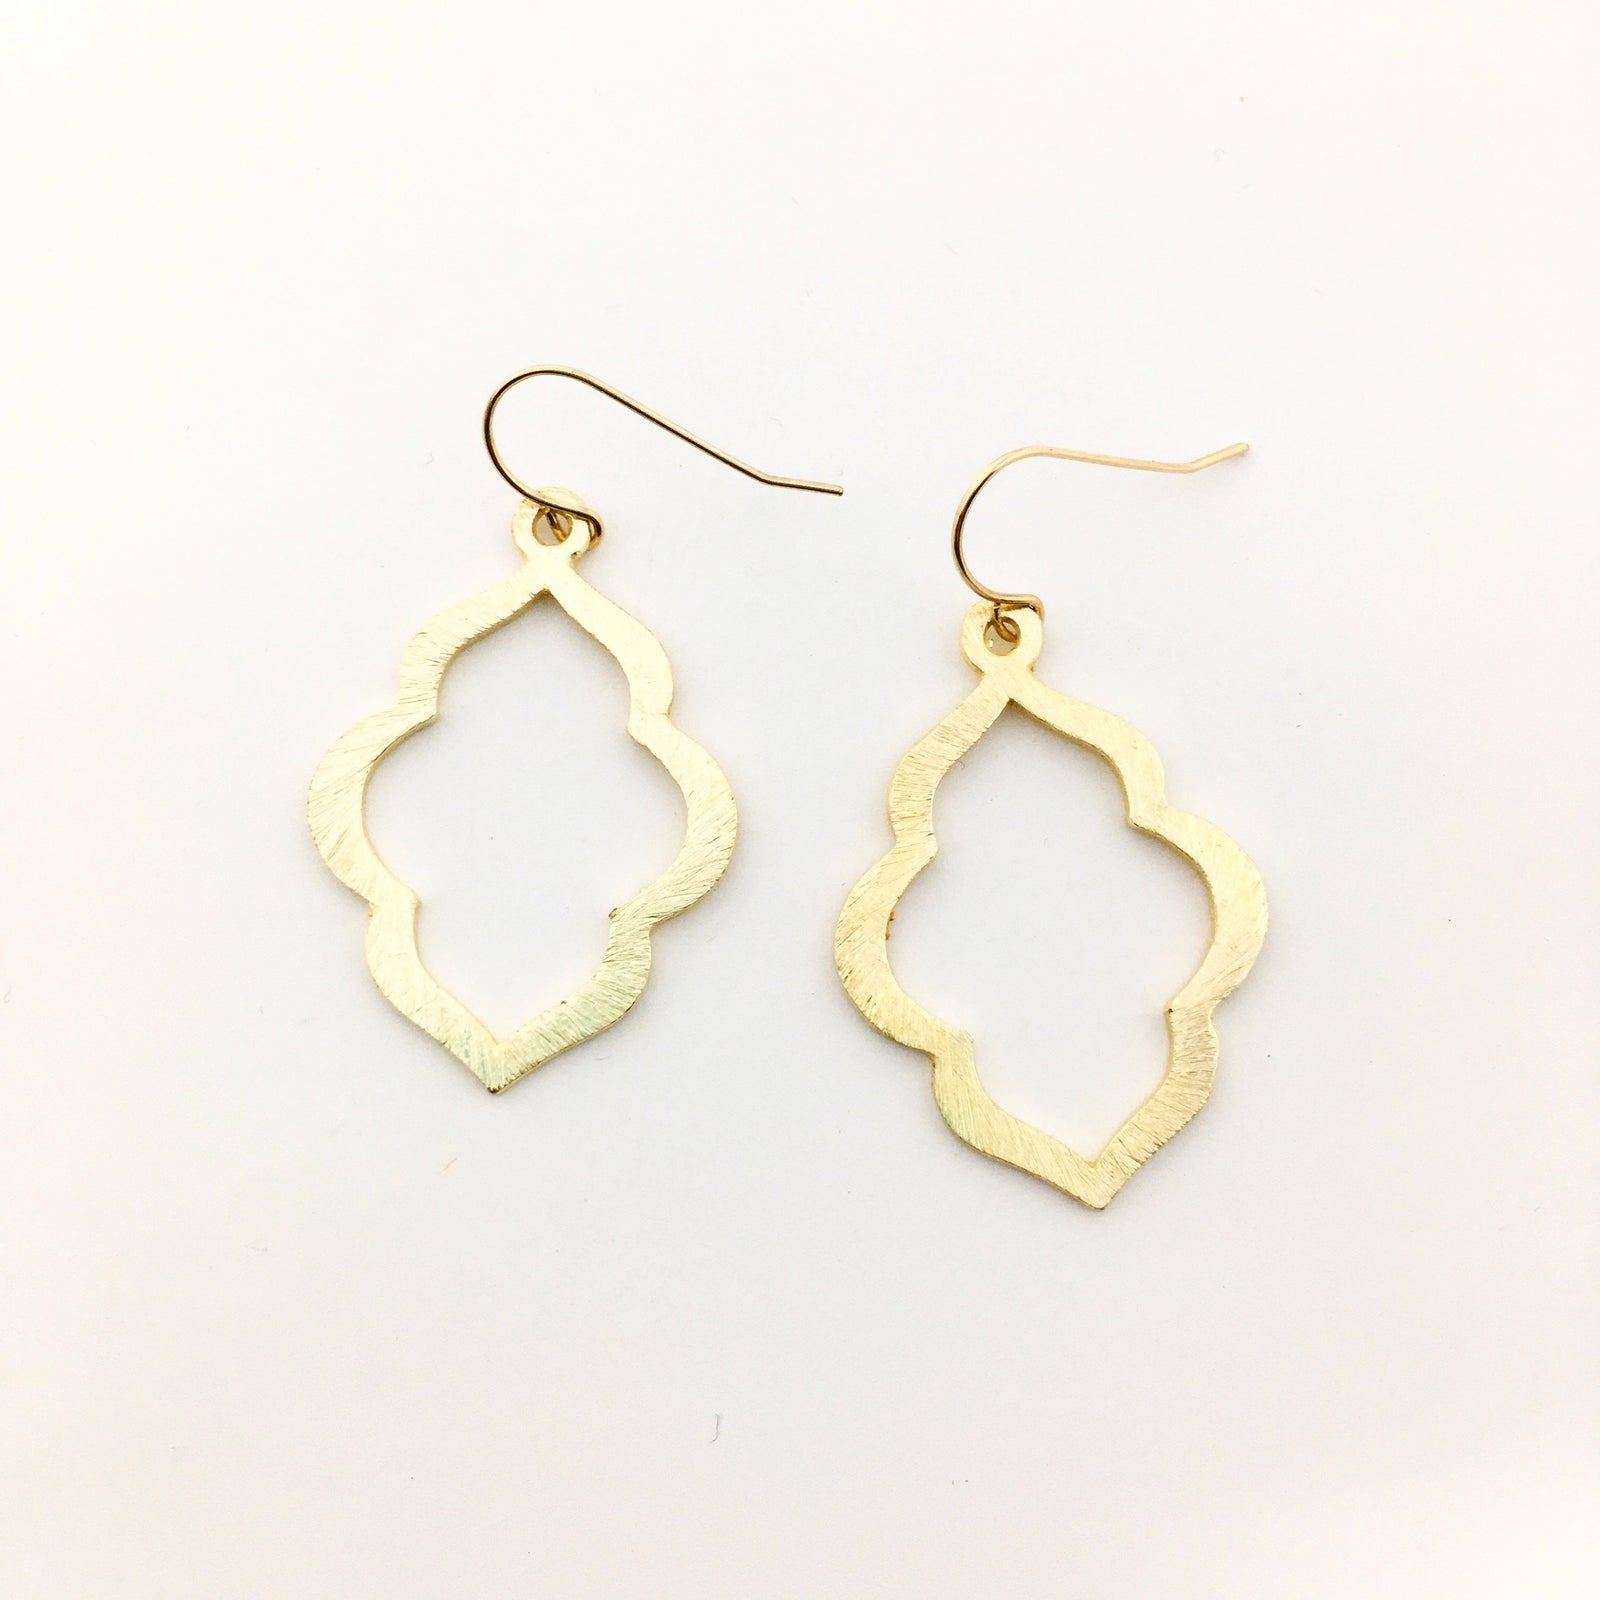 BRUSHED OGEE EARRINGS | 14K GOLD-FILLED | SIZE OPTIONS